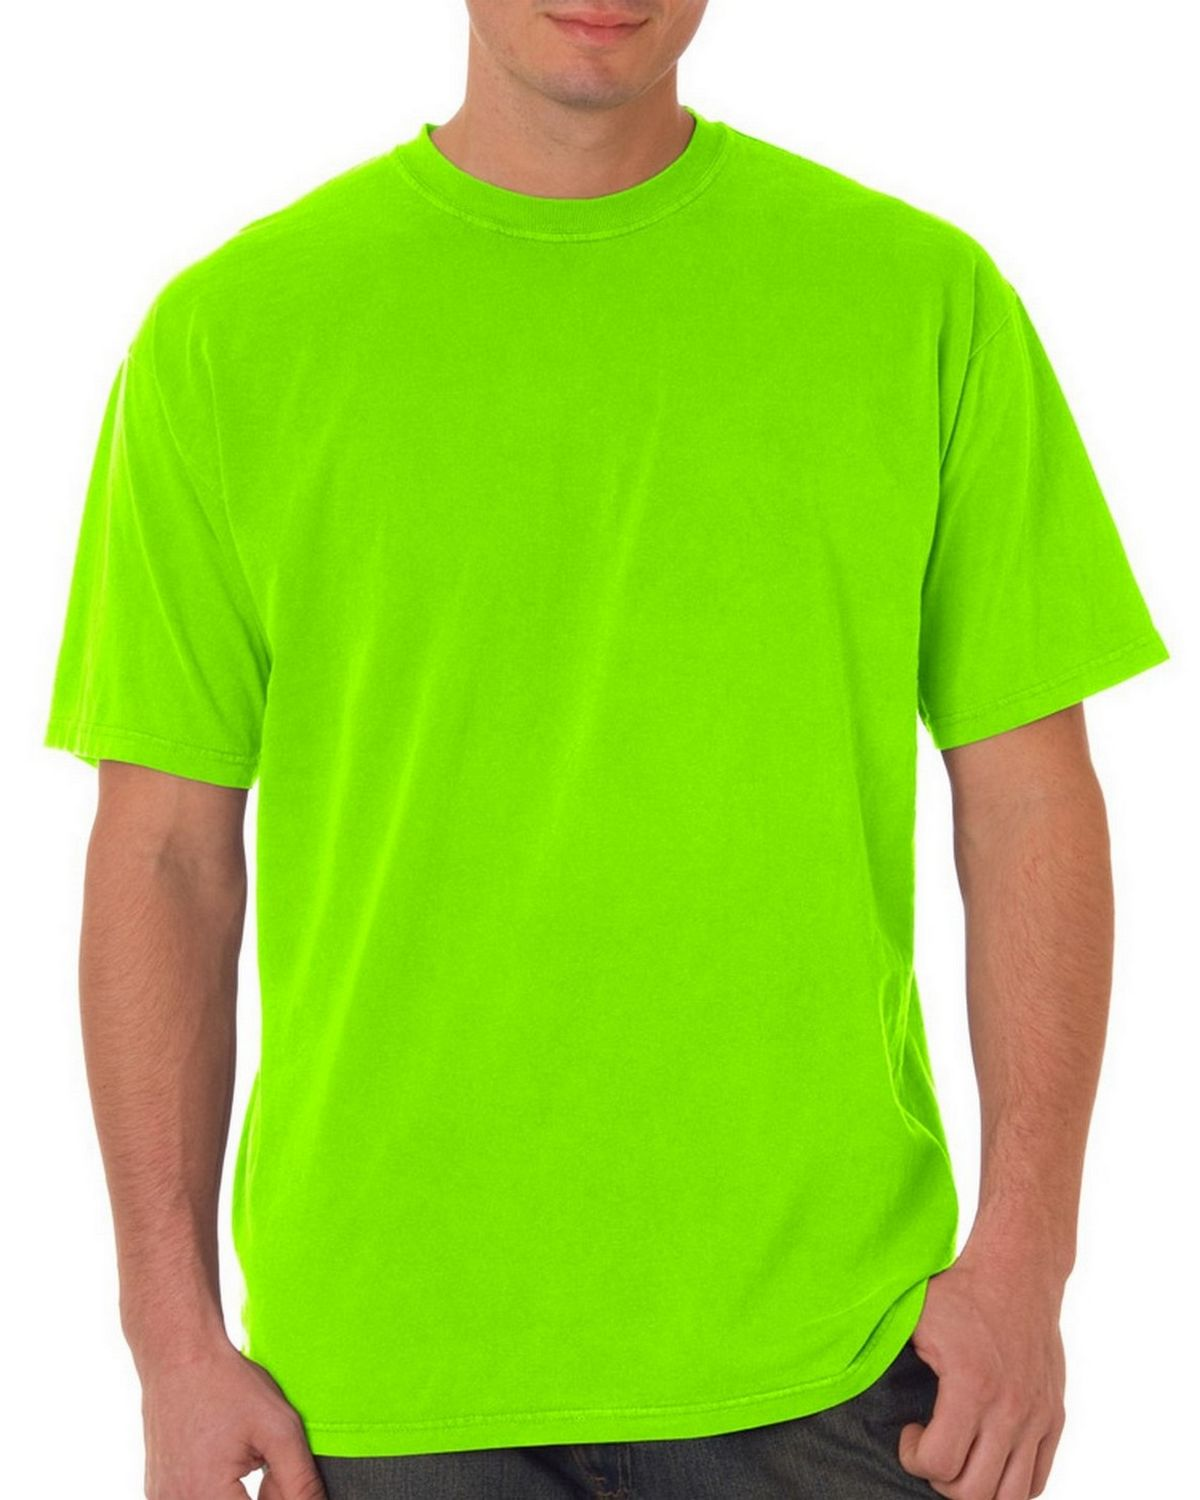 lime green shirts dress images